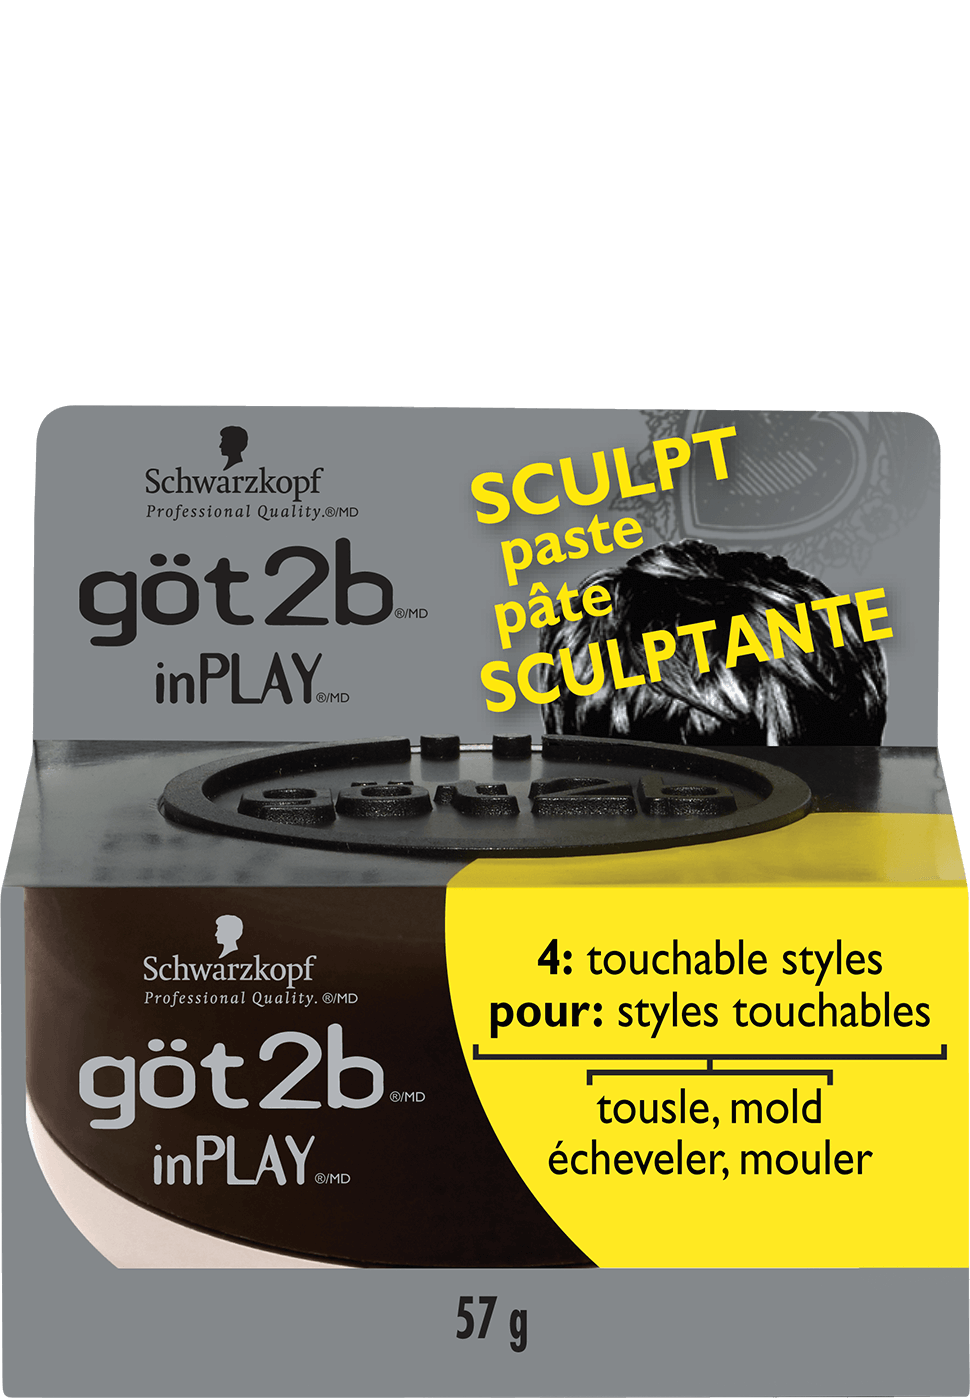 got2b_en_inPLAY_sculpt_paste_970x1400